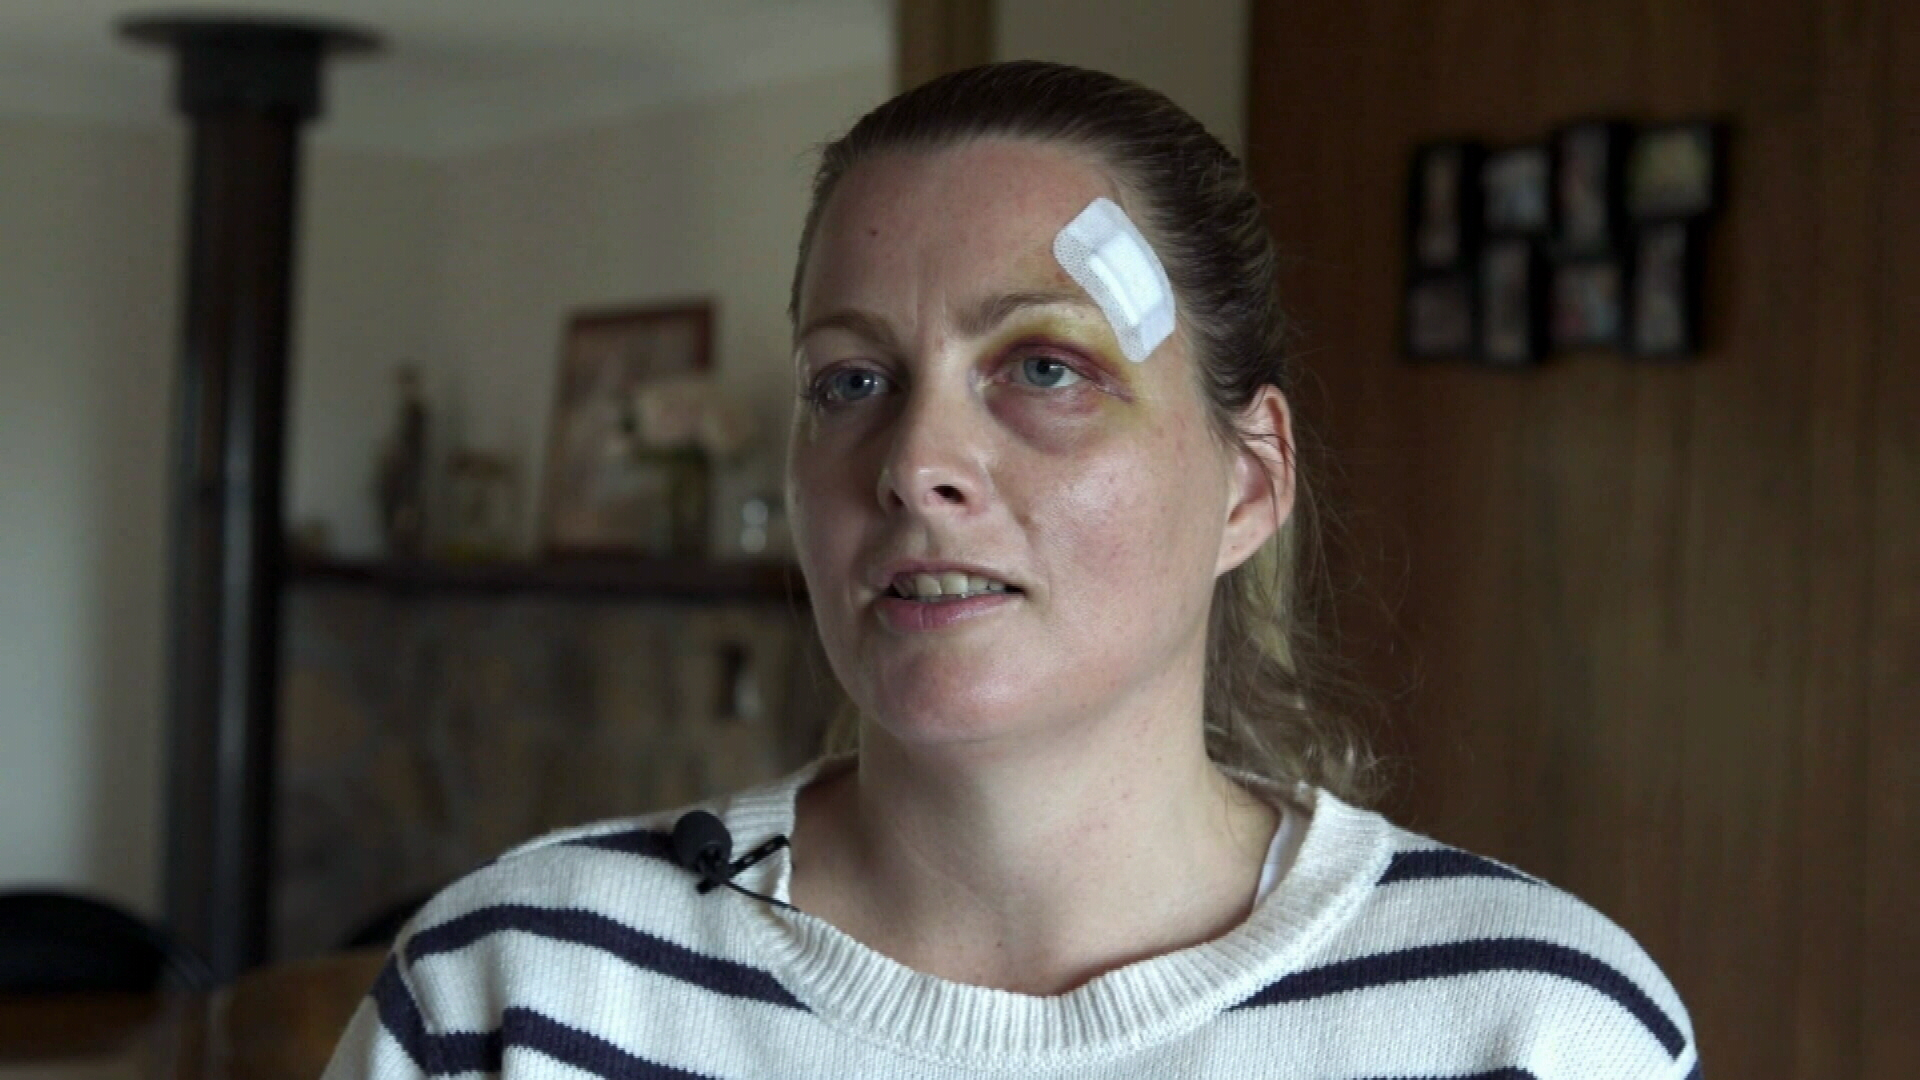 Nurse 'punched in the head' by patient